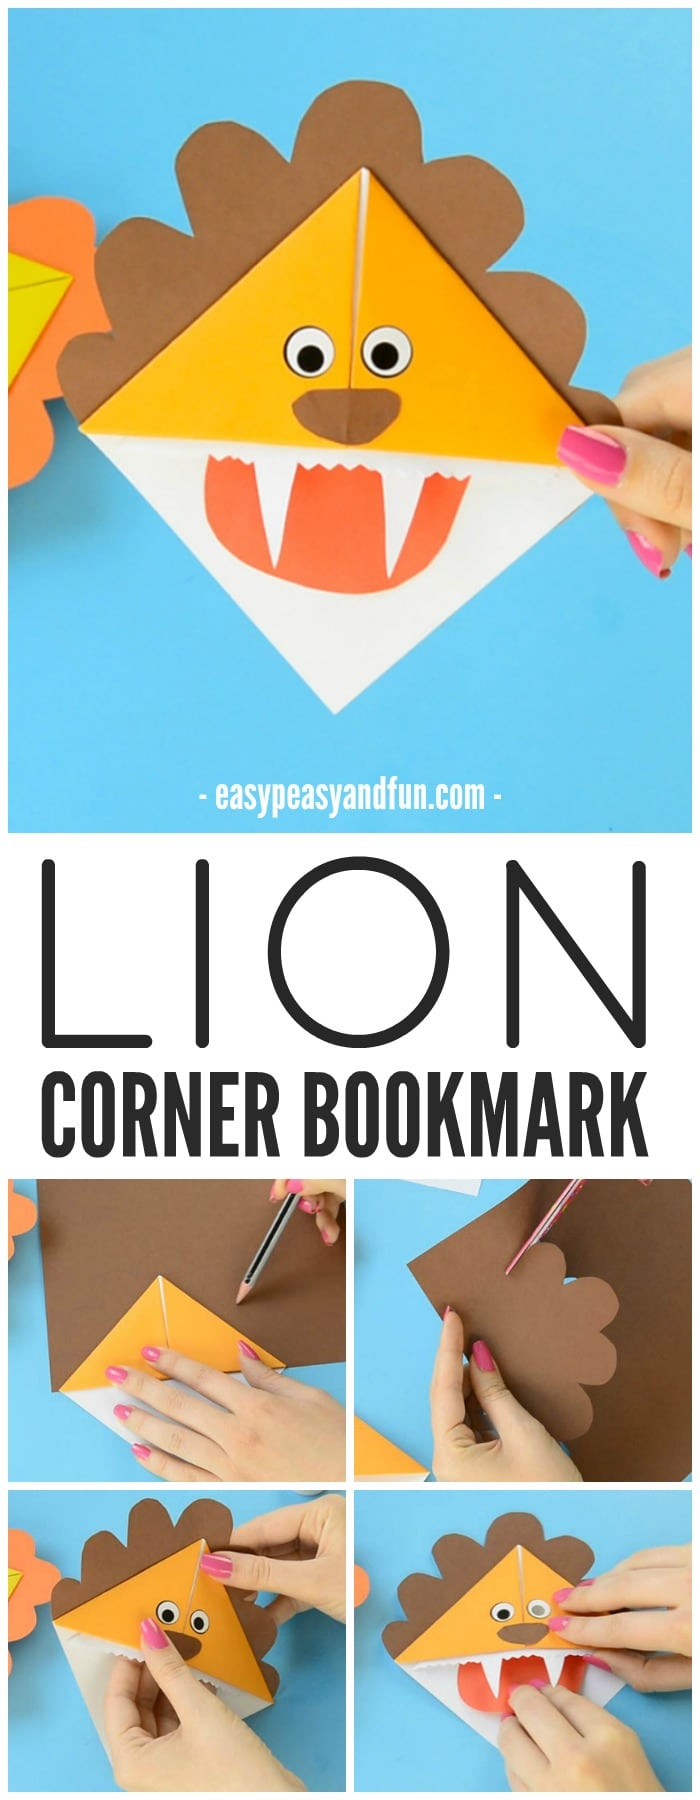 Lion Corner Bookmarks Step By Tutorial Easy Peasy